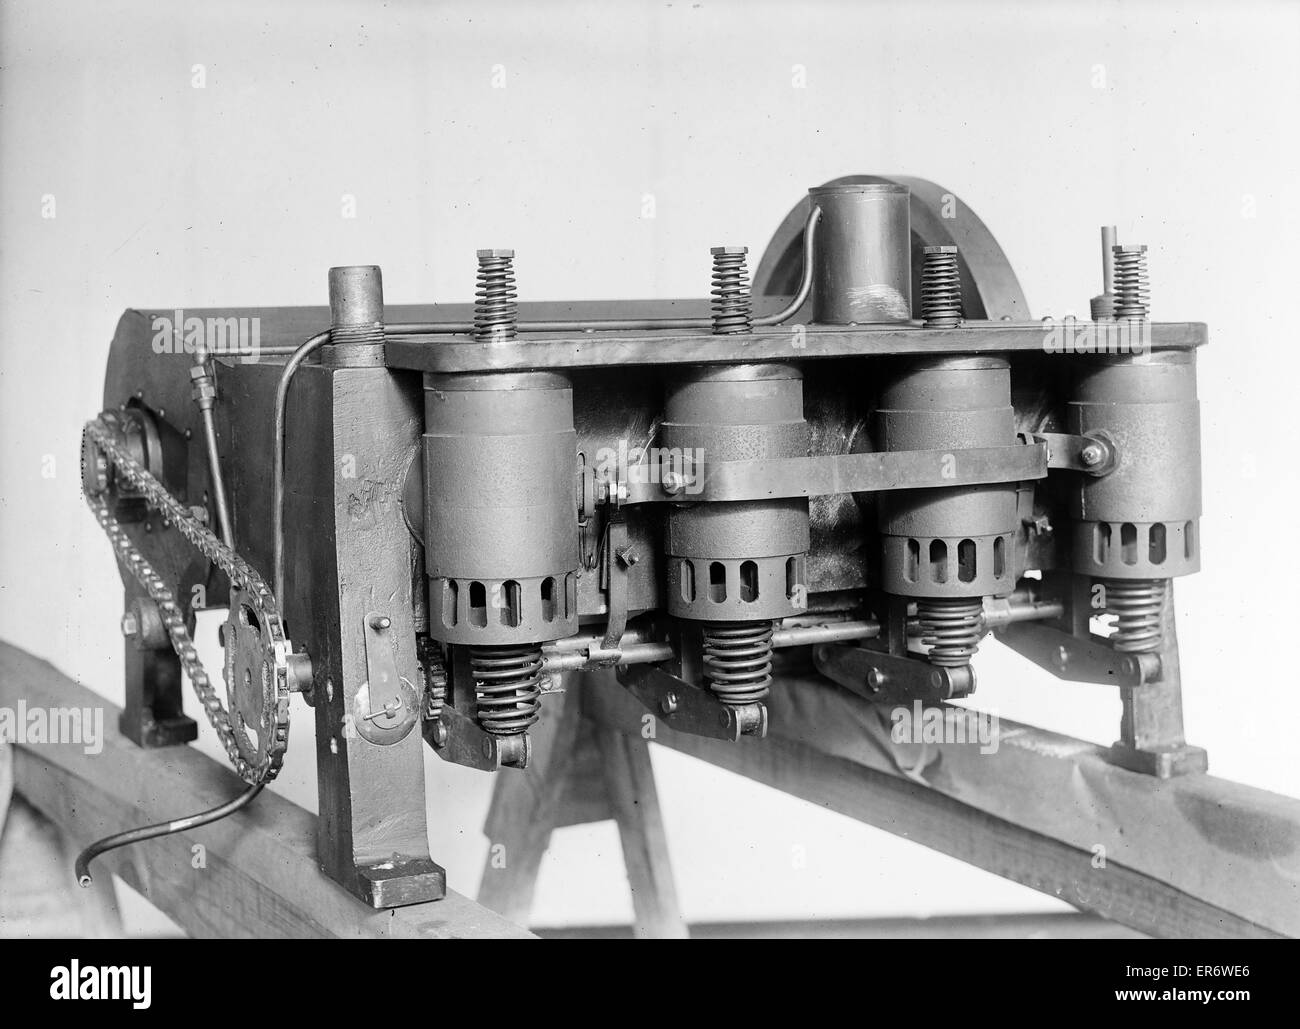 Left front side of the Wright brothers' reconstructed 1903 motor. Date 1928 Jan. 10. - Stock Image